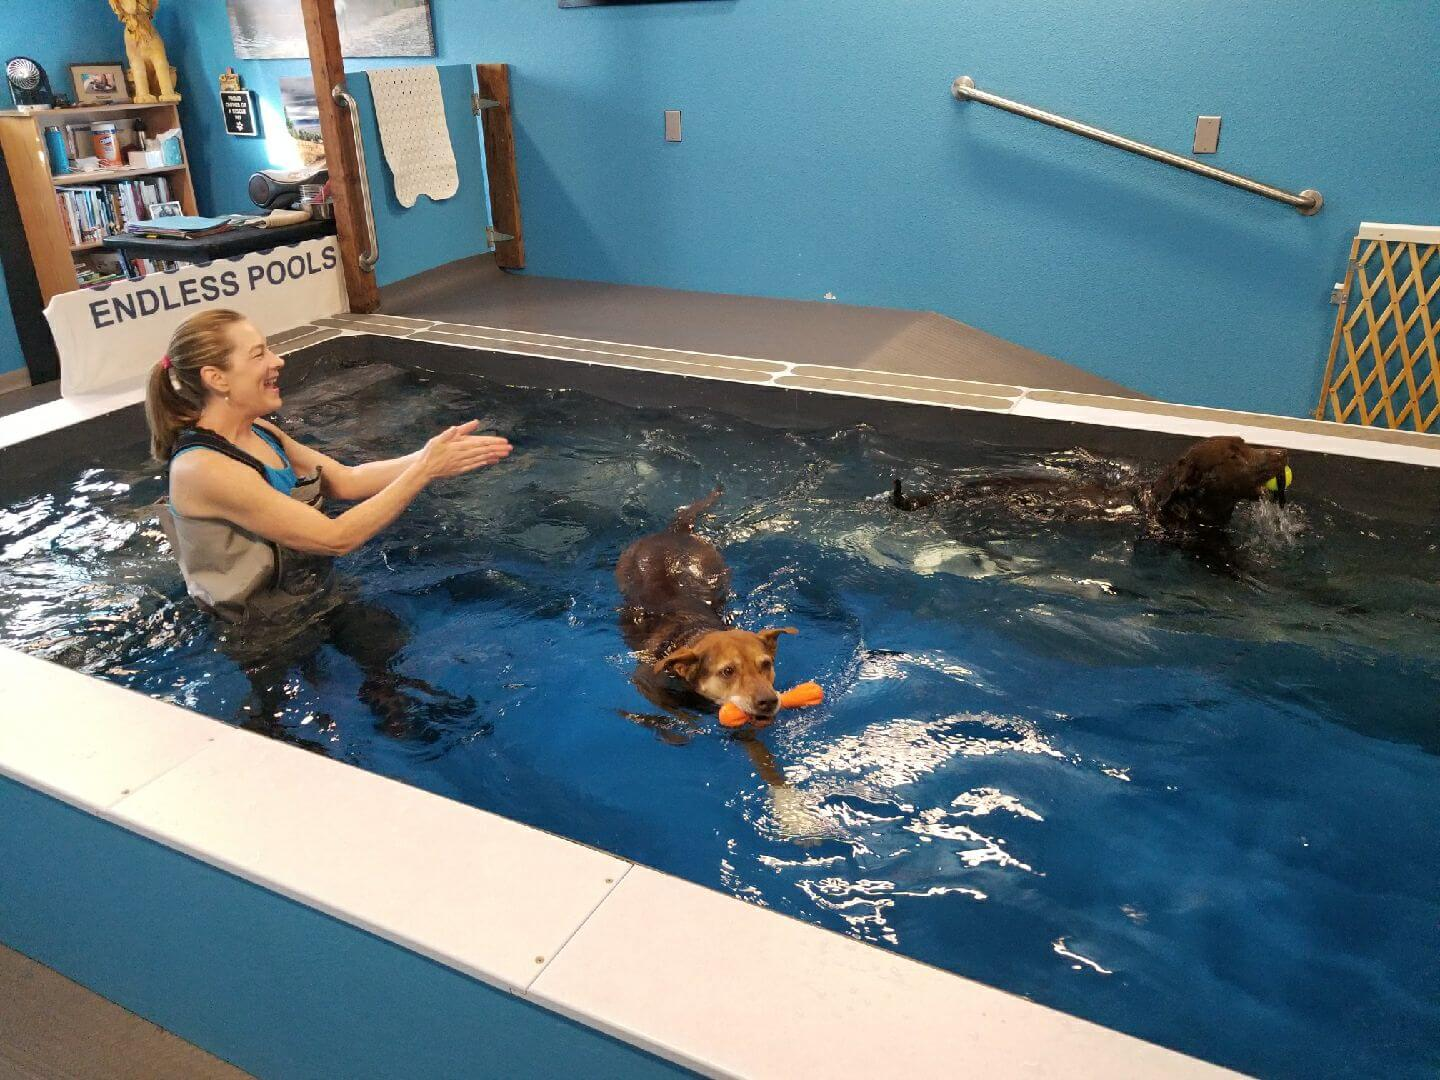 canine hydrotherapy in the Original Endless Pool at Montana Water Dogs